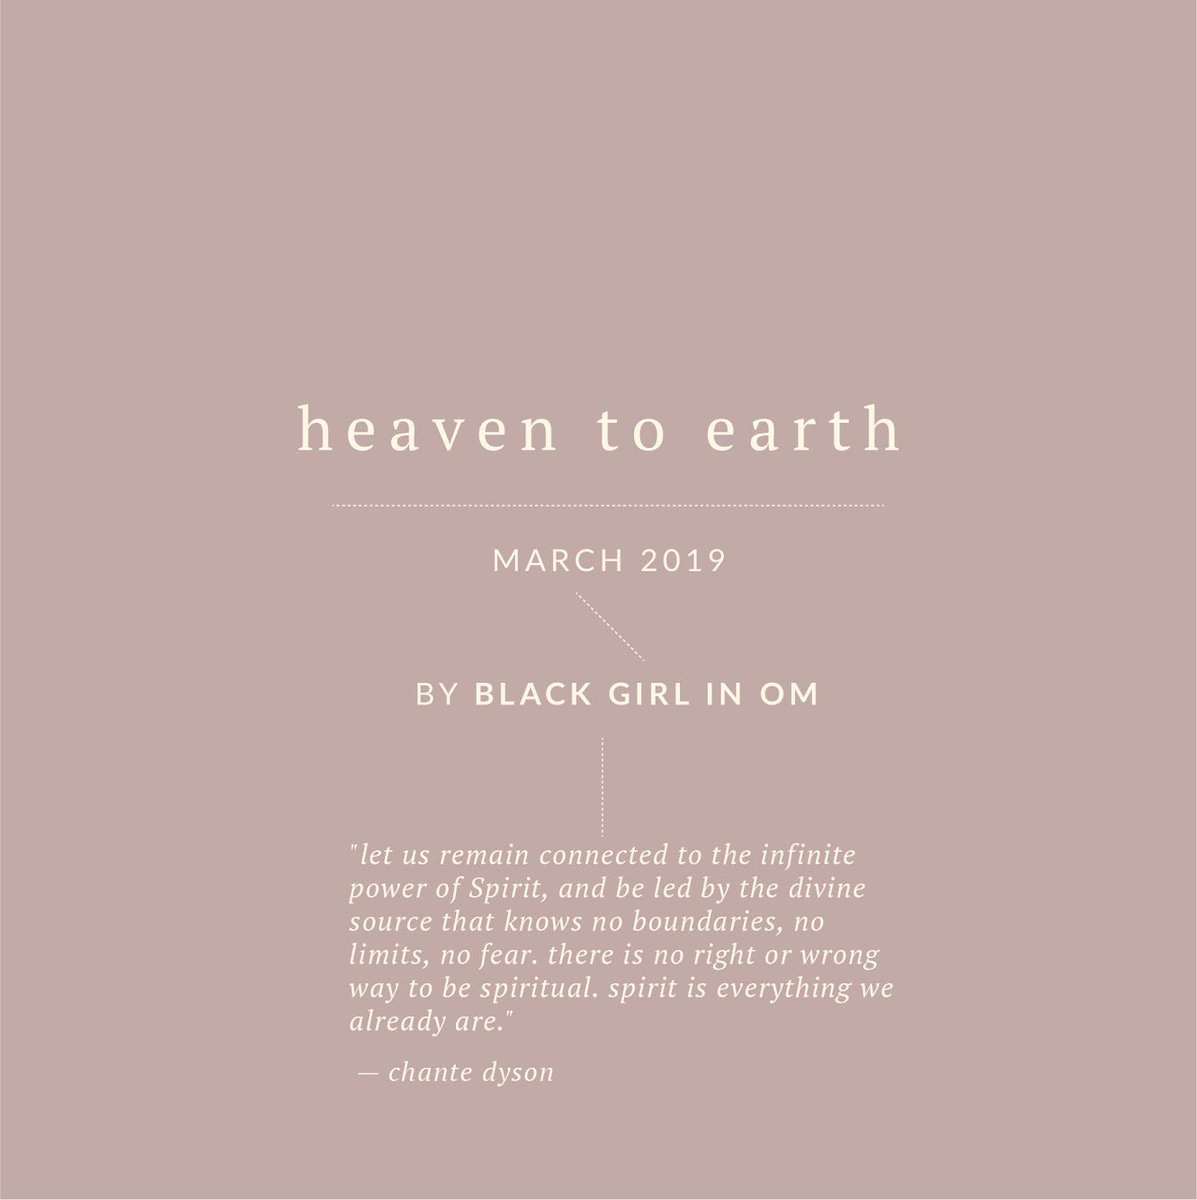 This month on Om we explore Heaven to Earth: Alternative Spirituality, Astrology, and Everything in between.   What revelations about the metaphysical realm have *you* discovered? Send your pitches to editor[at]http://blackgirlinom.com